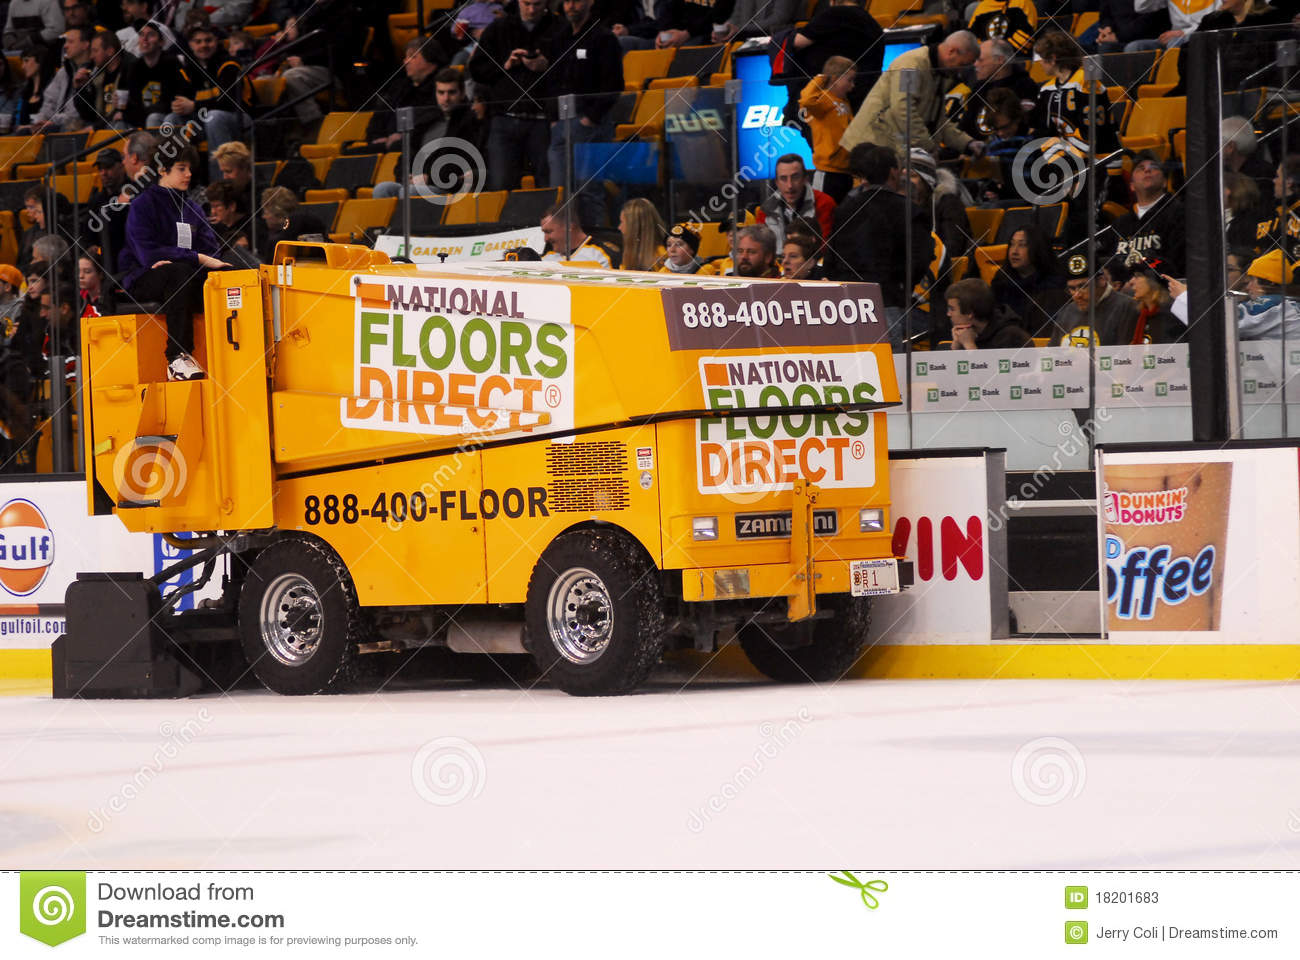 National Floors Direct Zamboni Editorial Stock Photo  Image of hockey machine 18201683